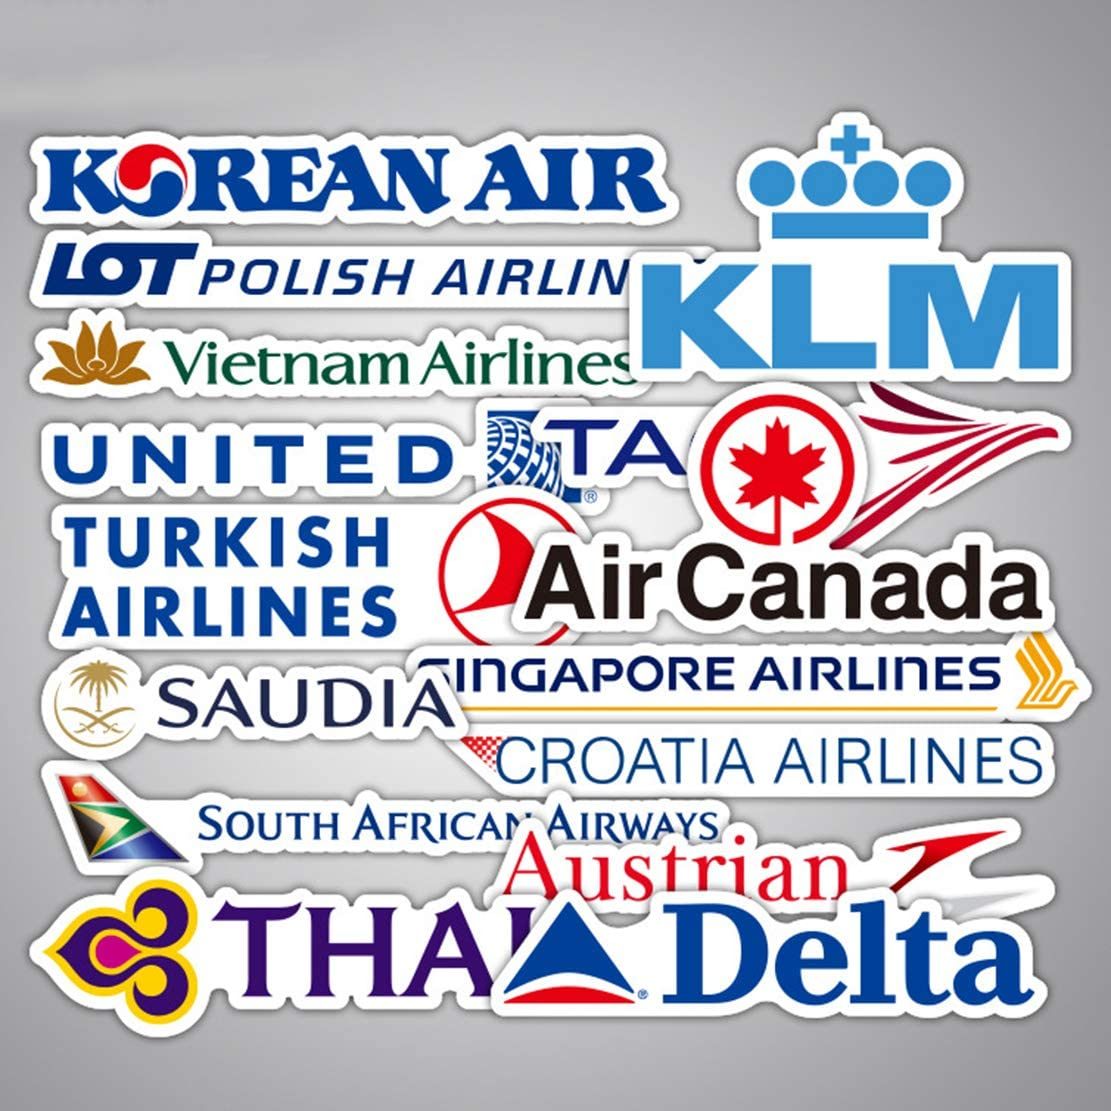 ARPA 55Pcs Airline Logo Stickers for Laptops Books Cars Motorcycles Skateboards Bicycles Suitcases Skis Luggage Cup Hydro Flasks etc DXQX